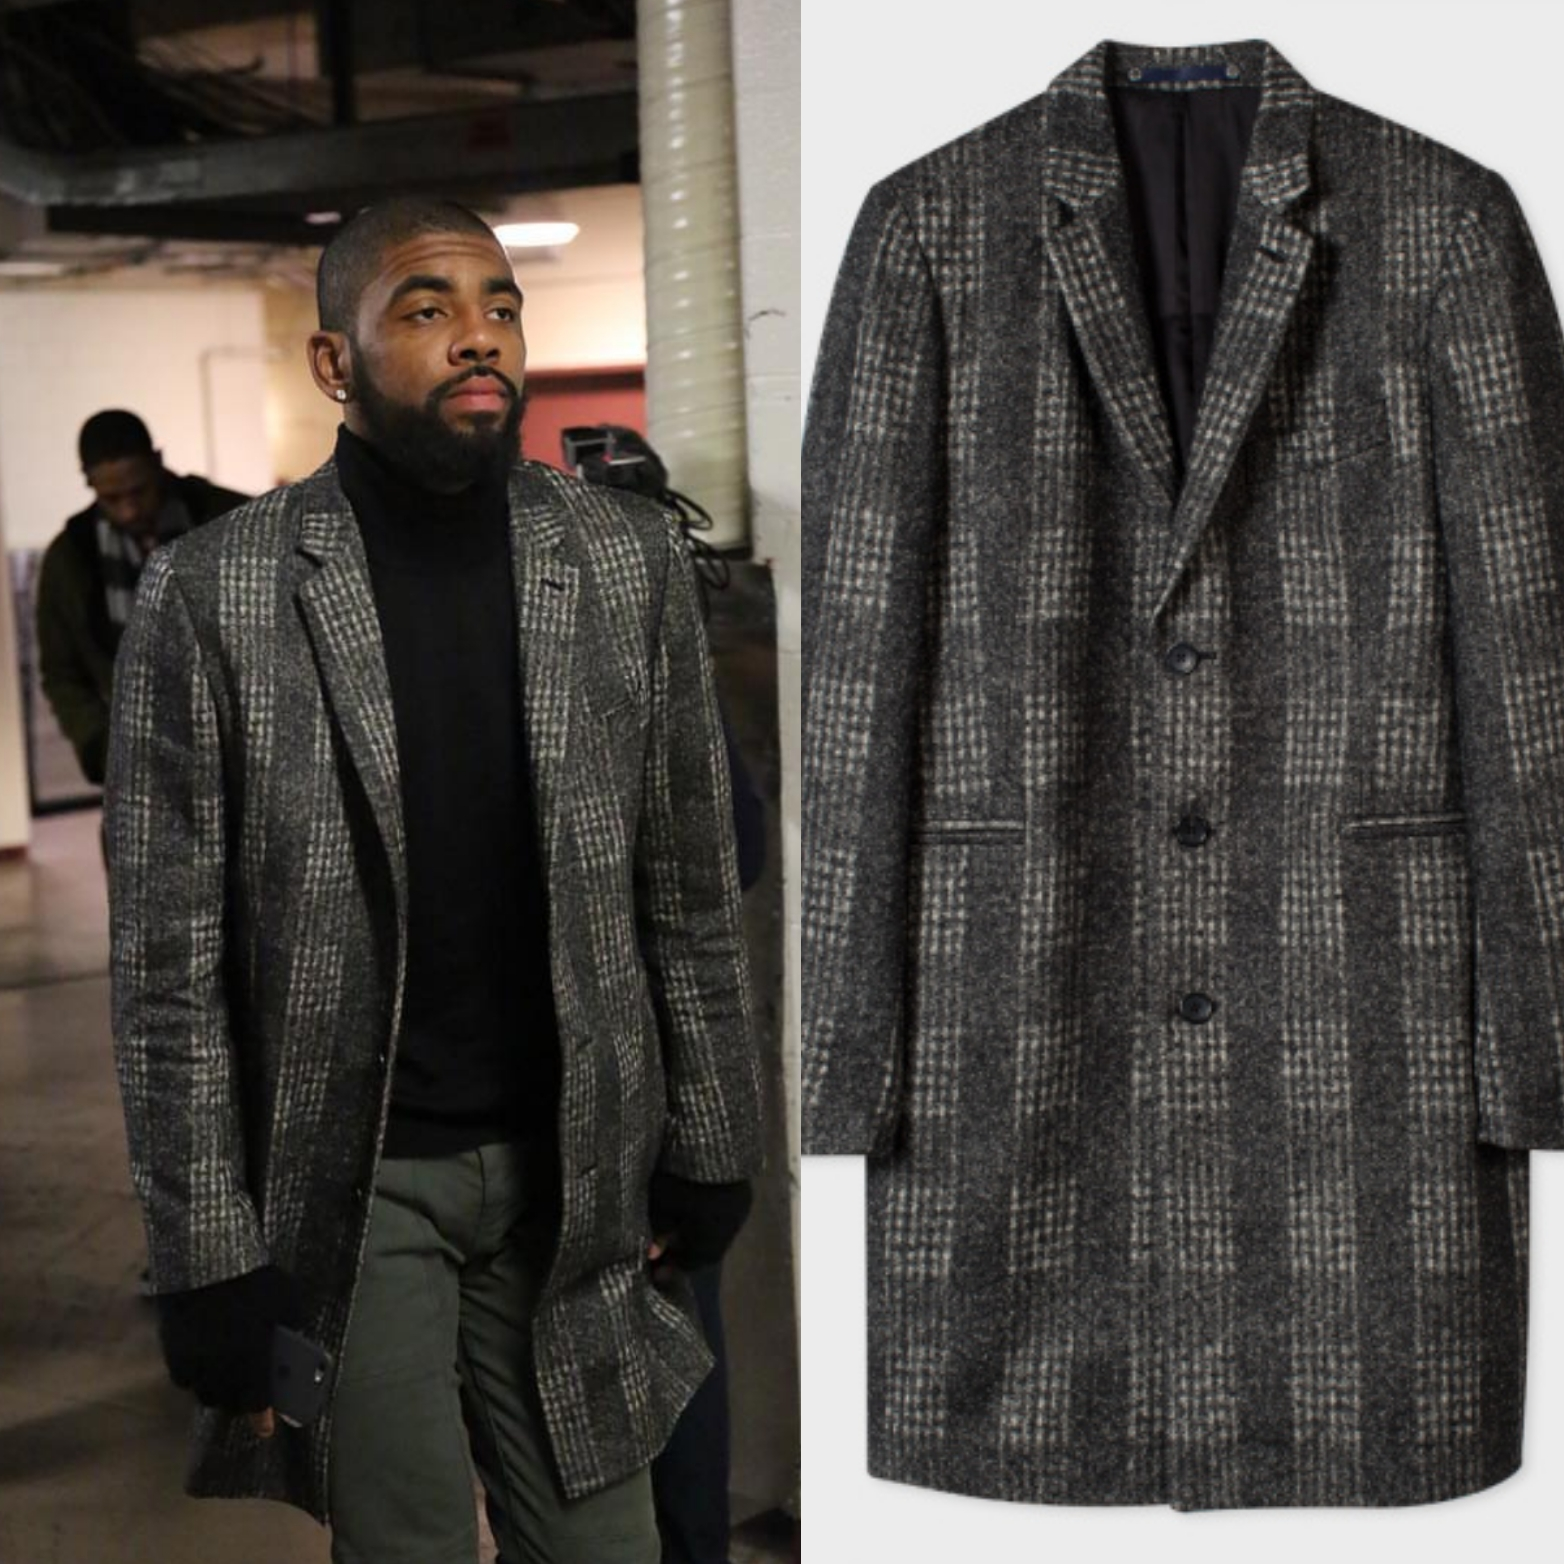 STYLE: NBA Kyrie Irving's Paul Smith Mens Fashion Jacket